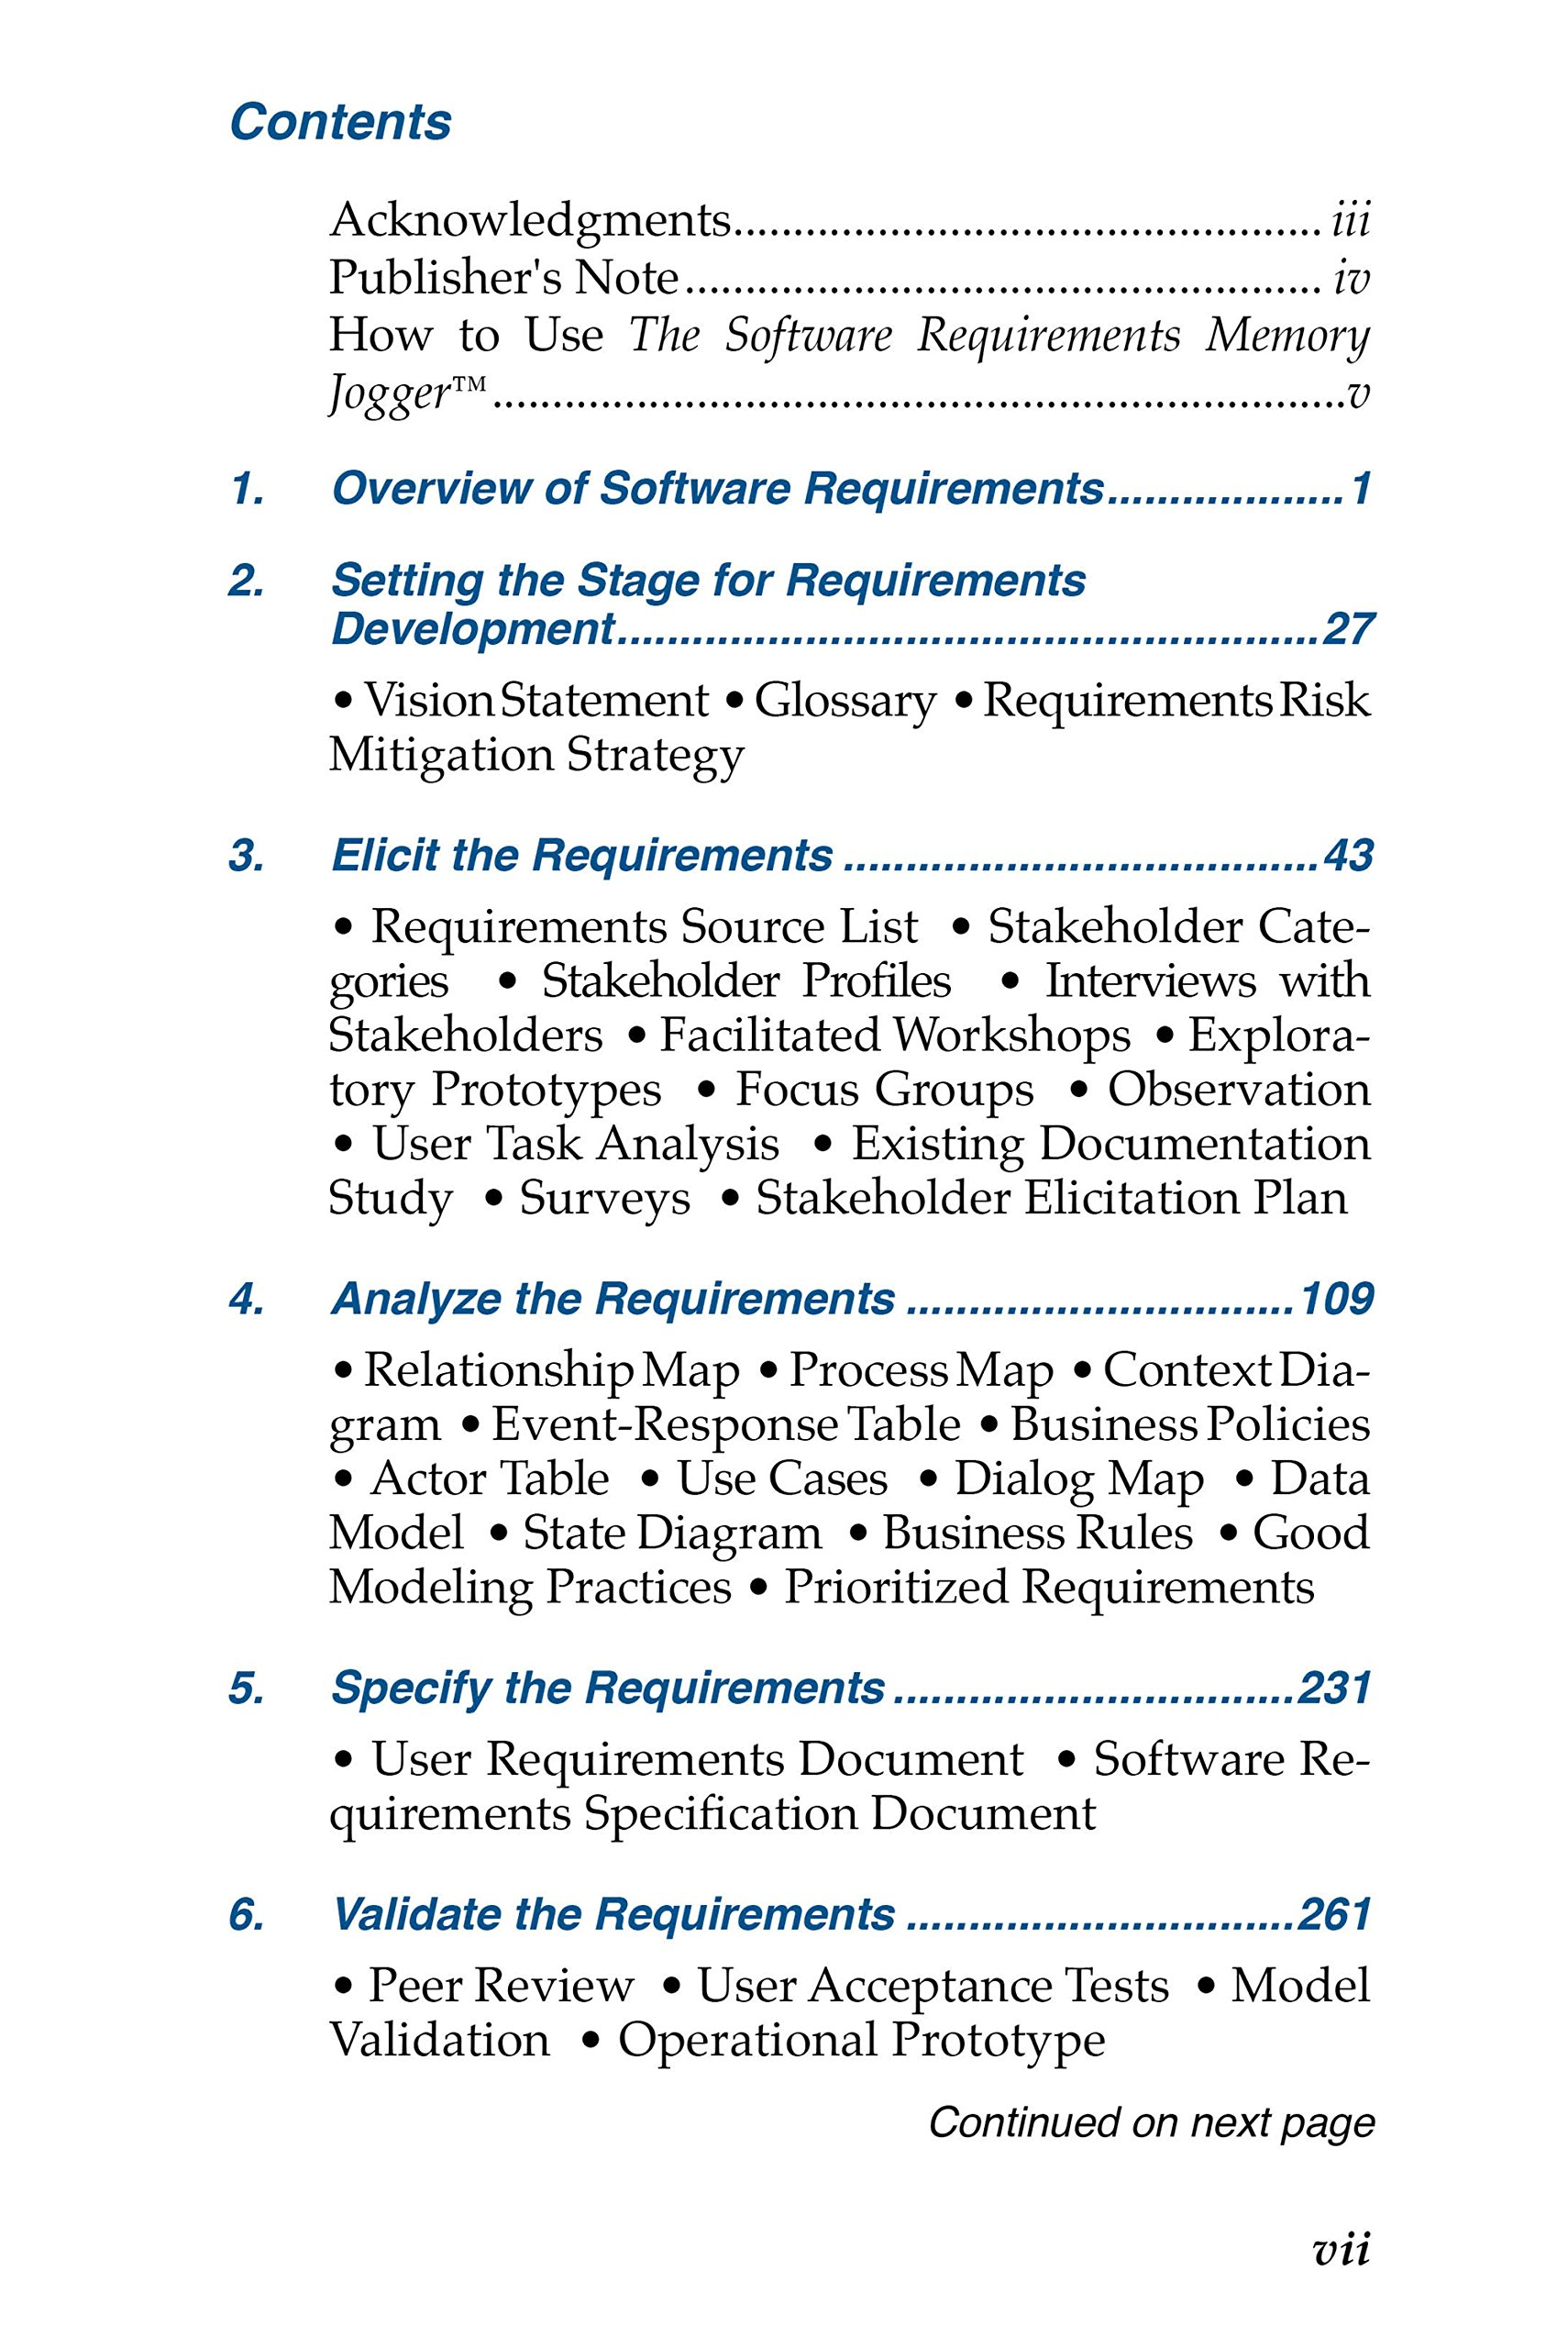 Amazoncom The Software Requirements Memory Jogger A Pocket Guide - Business requirements software